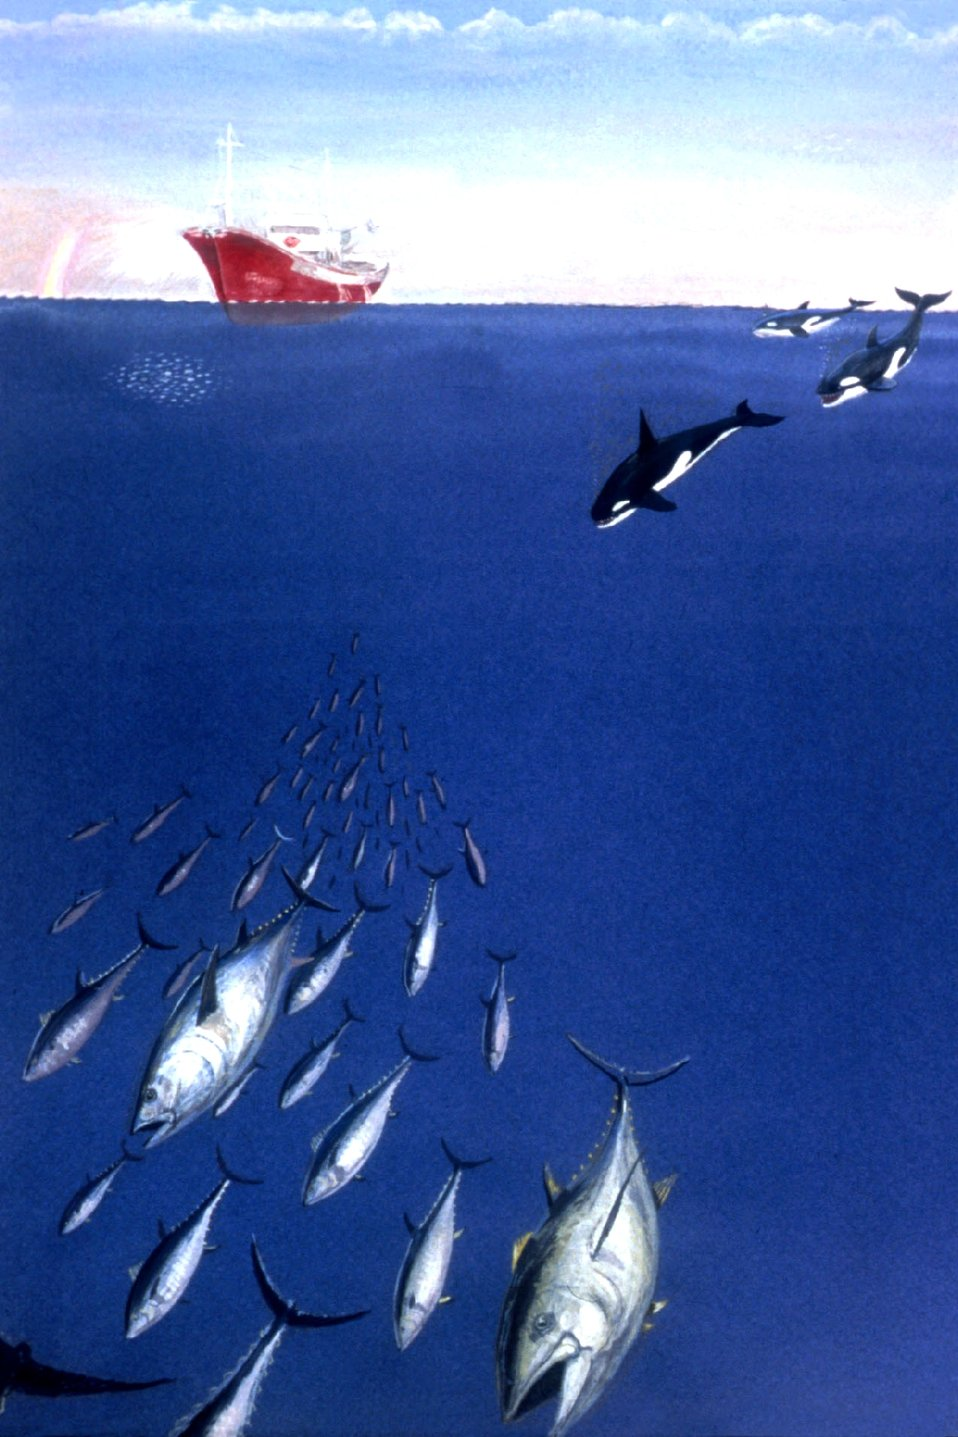 Besides man, killer whales are major predators pursuing tuna.